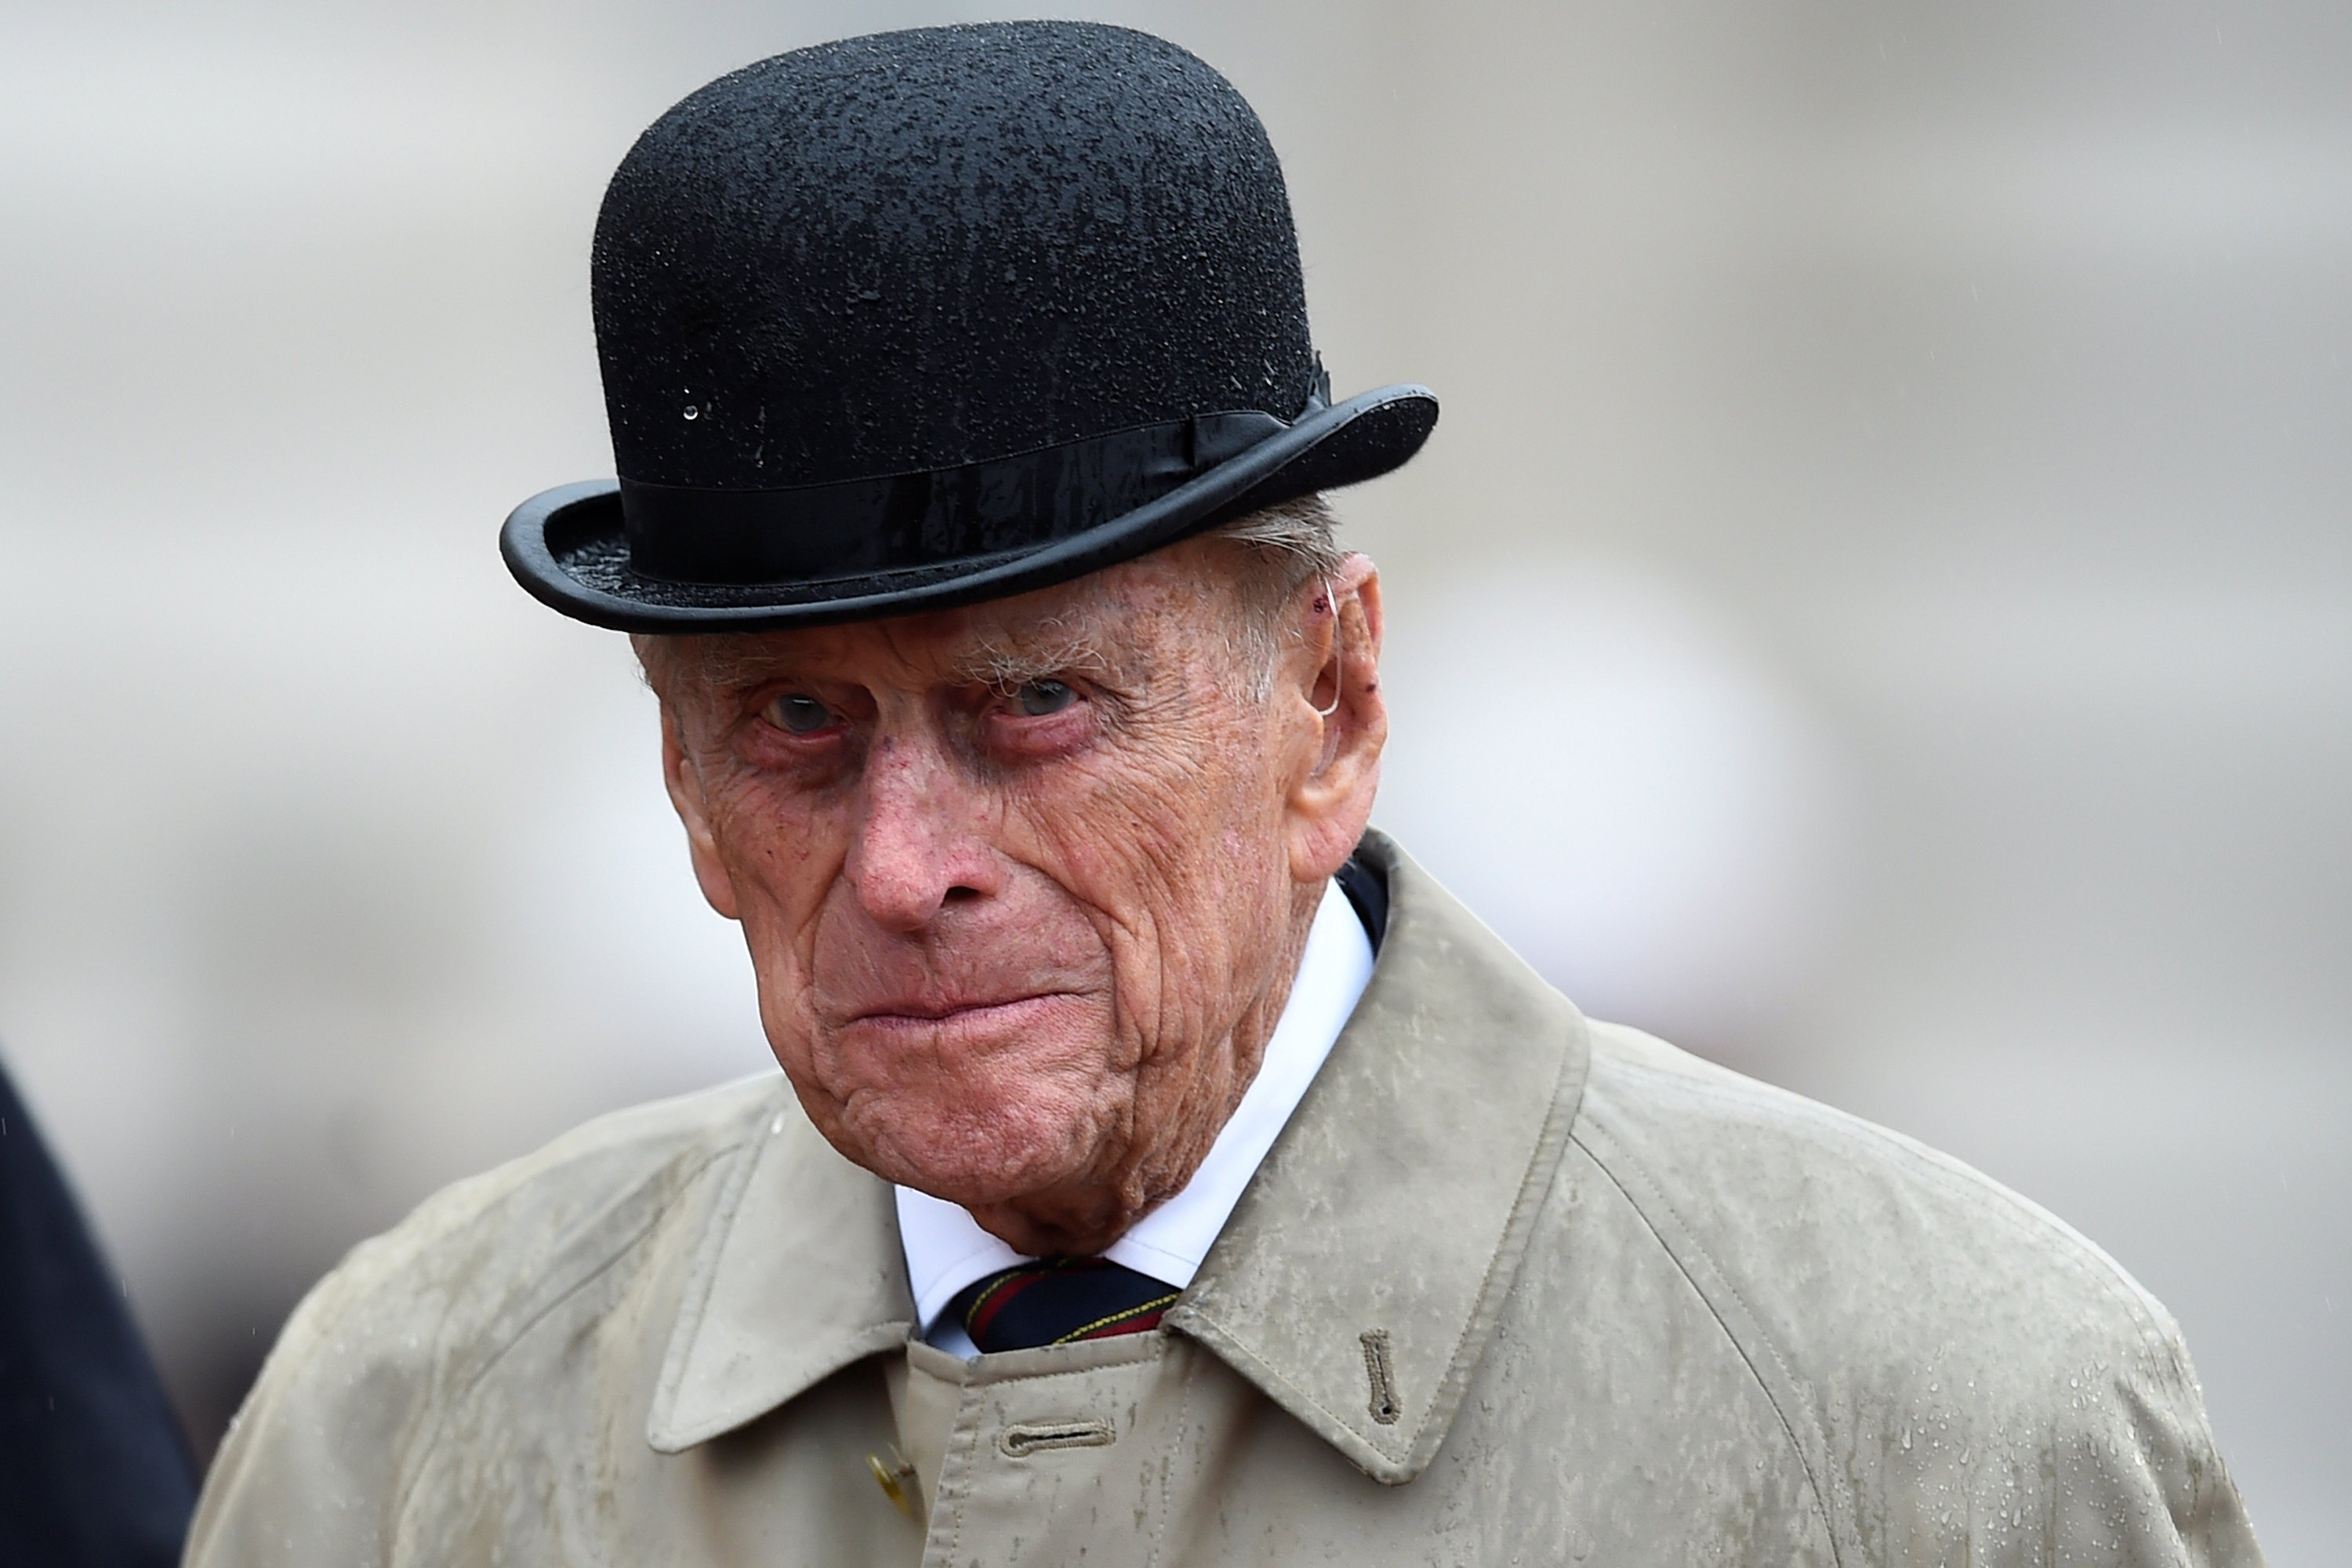 Prince Philip makes his final individual public engagement as he attends a parade to mark the finale of the 1664 Global Challenge, on the Buckingham Palace Forecourt on August 2, 2017 in London, England   Photo: Getty Images